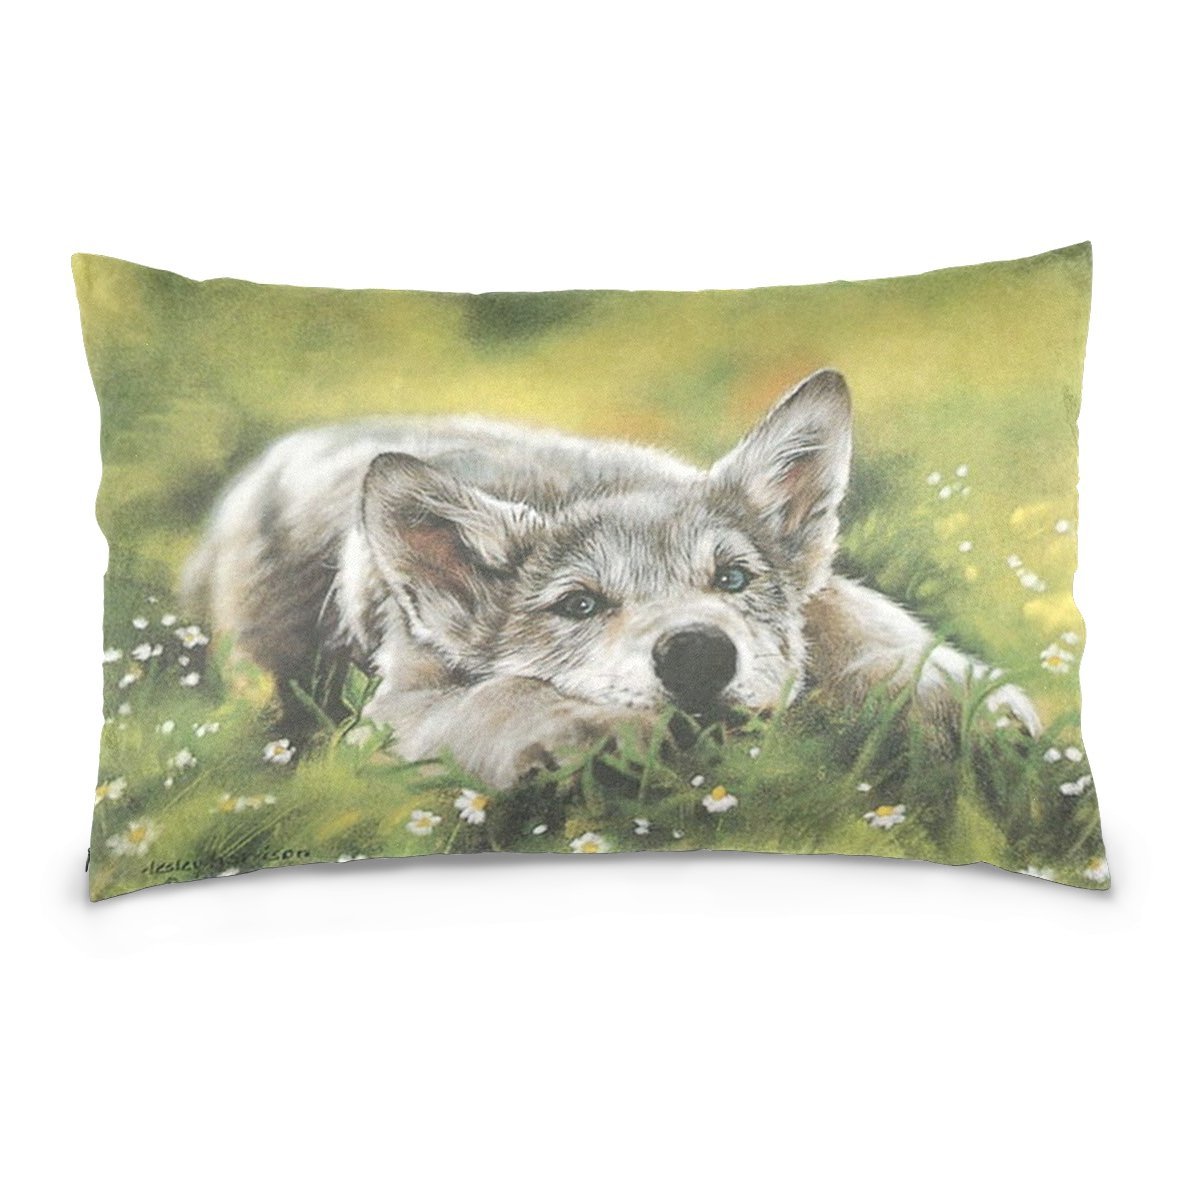 Pillow Covers Pillow Protectors Bed Bug Dust Mite Resistant Standard Pillow Cases Cotton Sateen Allergy Proof Soft Quality Covers with Watercolor Animales Wolf Pattern for Bedding